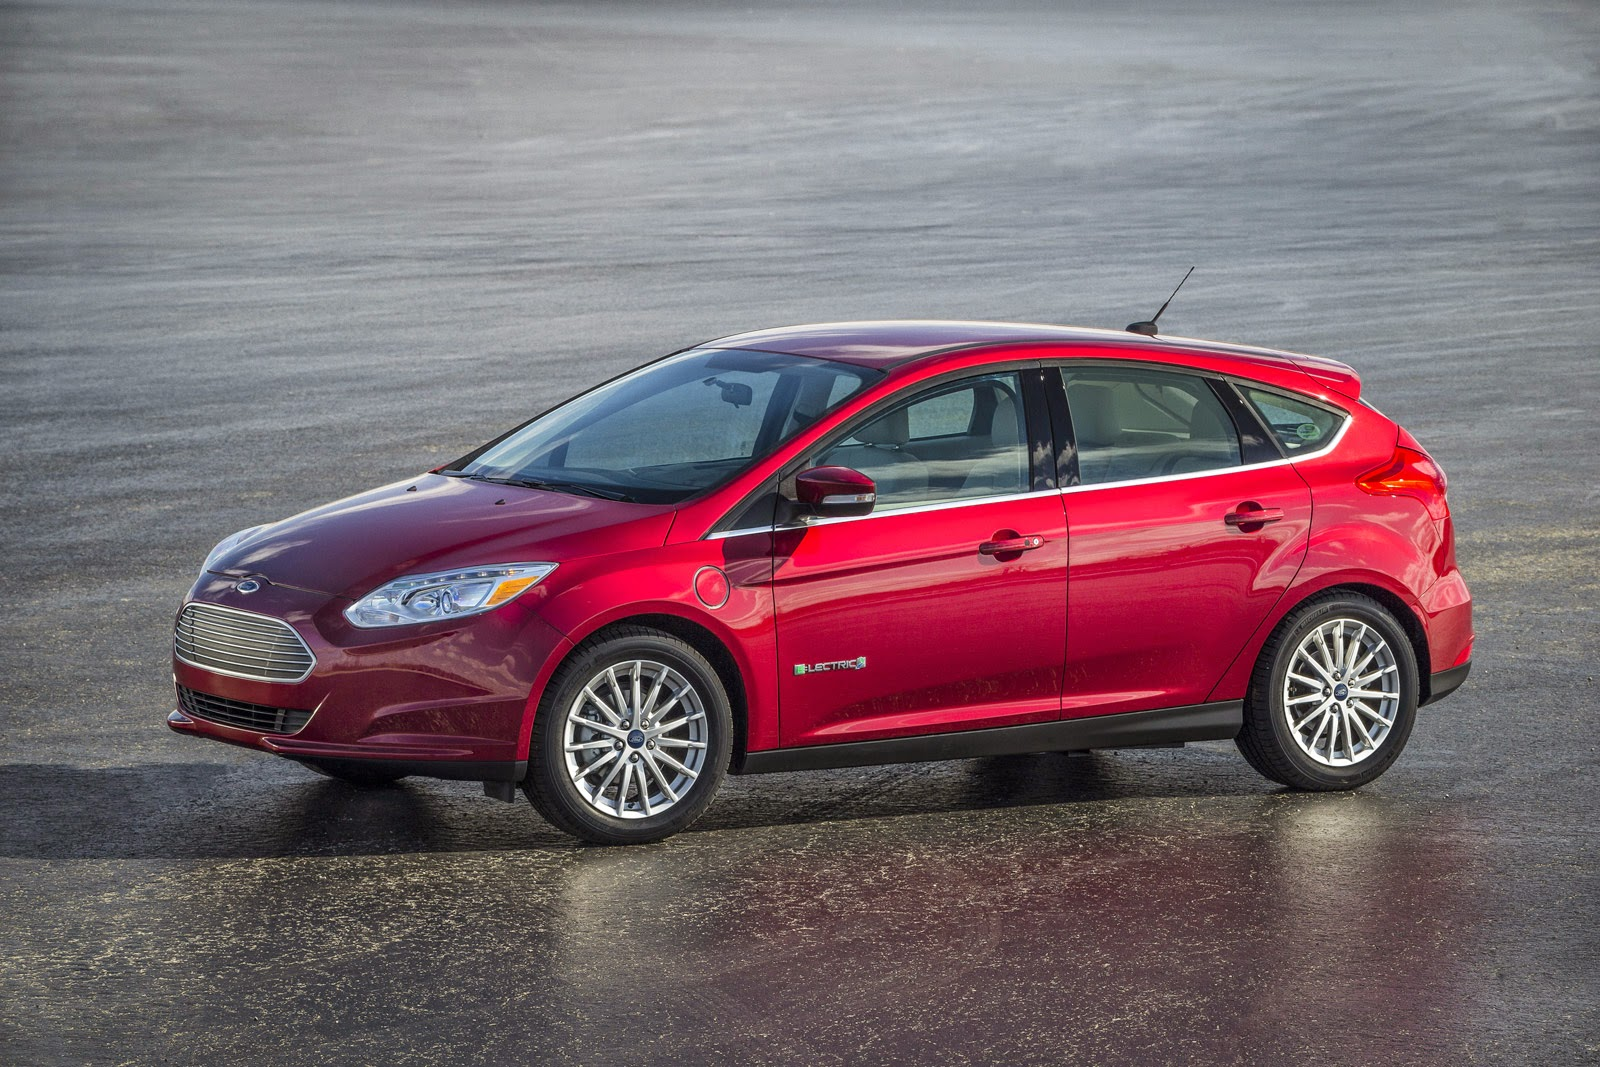 2017 Ford Focus Electric Price Cut To 29 995 A 6k Drop Report